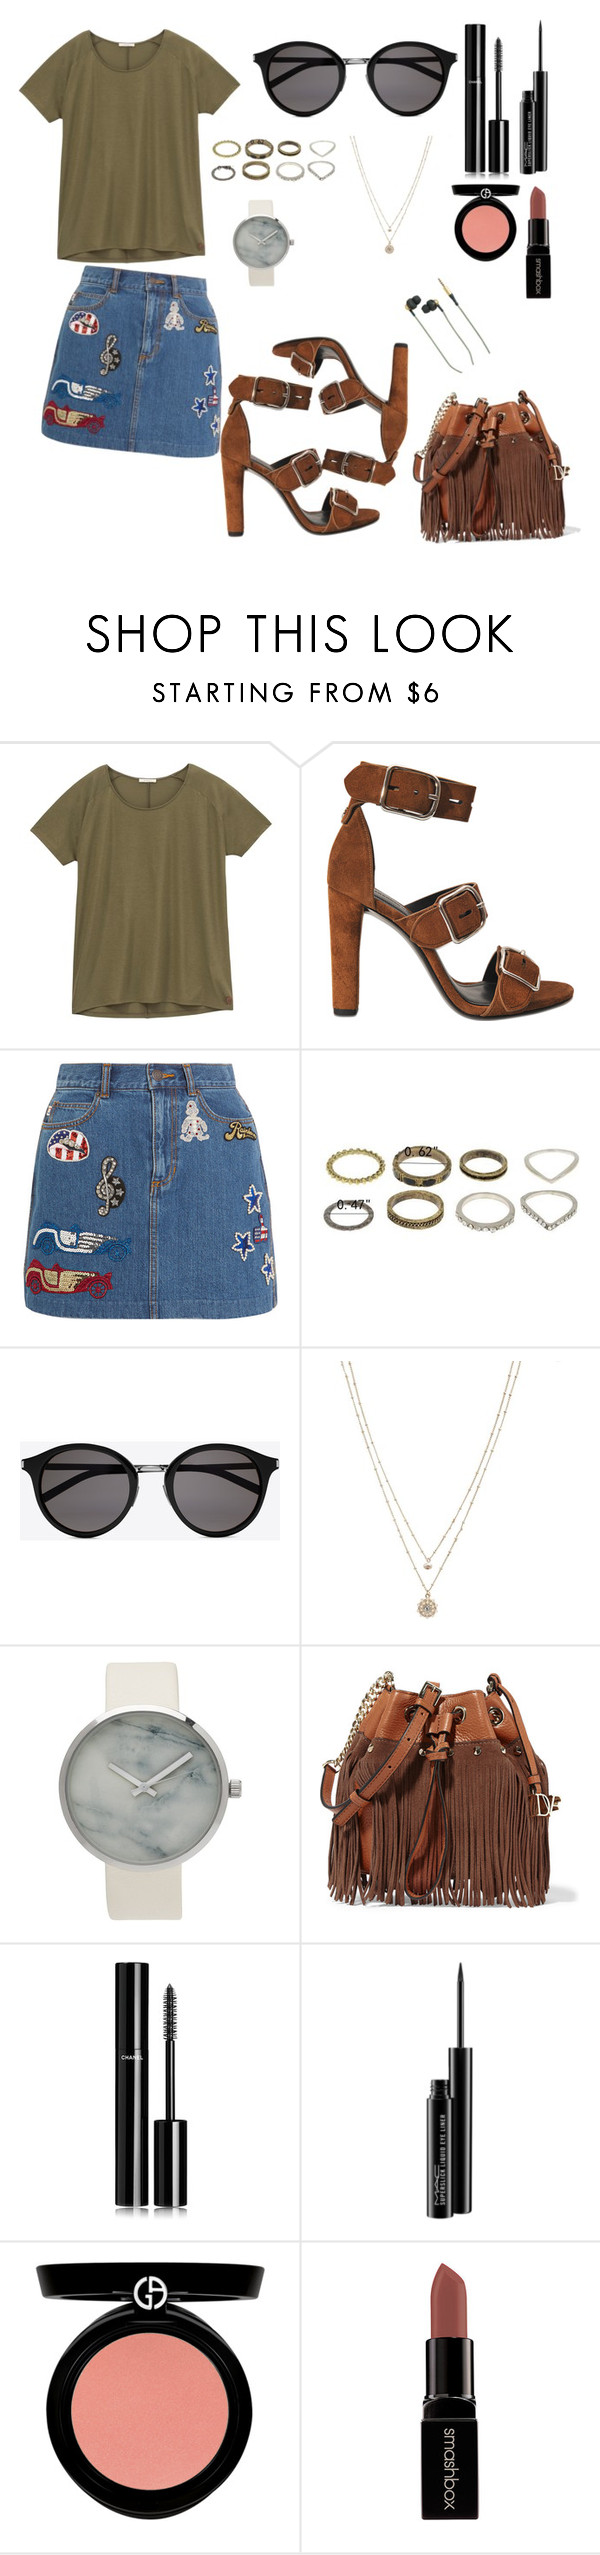 """""""Going To My Own Concert"""" by basak98 ❤ liked on Polyvore featuring Lee, Alexander Wang, Marc Jacobs, Yves Saint Laurent, LC Lauren Conrad, Diane Von Furstenberg, Chanel, MAC Cosmetics, Armani Beauty and Smashbox"""